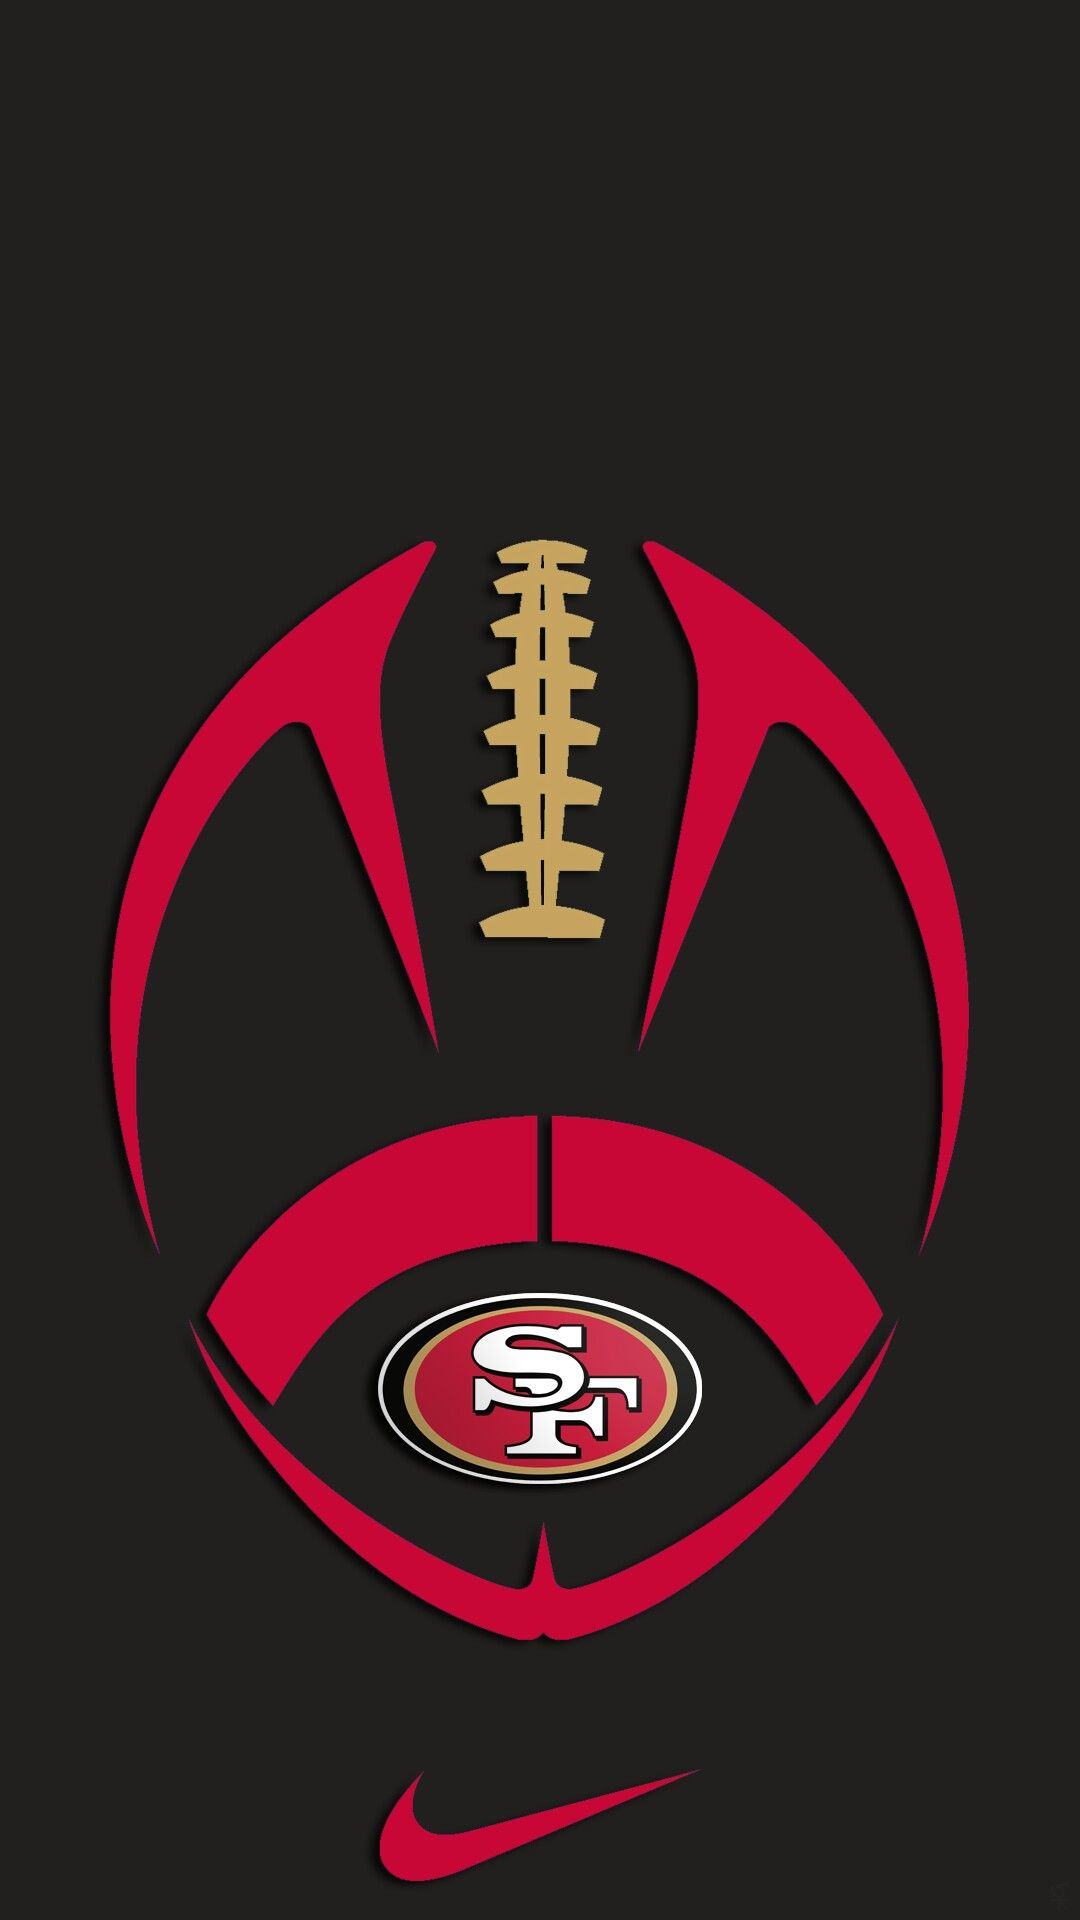 Pin By Misty Frisbie On San Francisco 49ers San Francisco 49ers Logo 49ers San Francisco 49ers